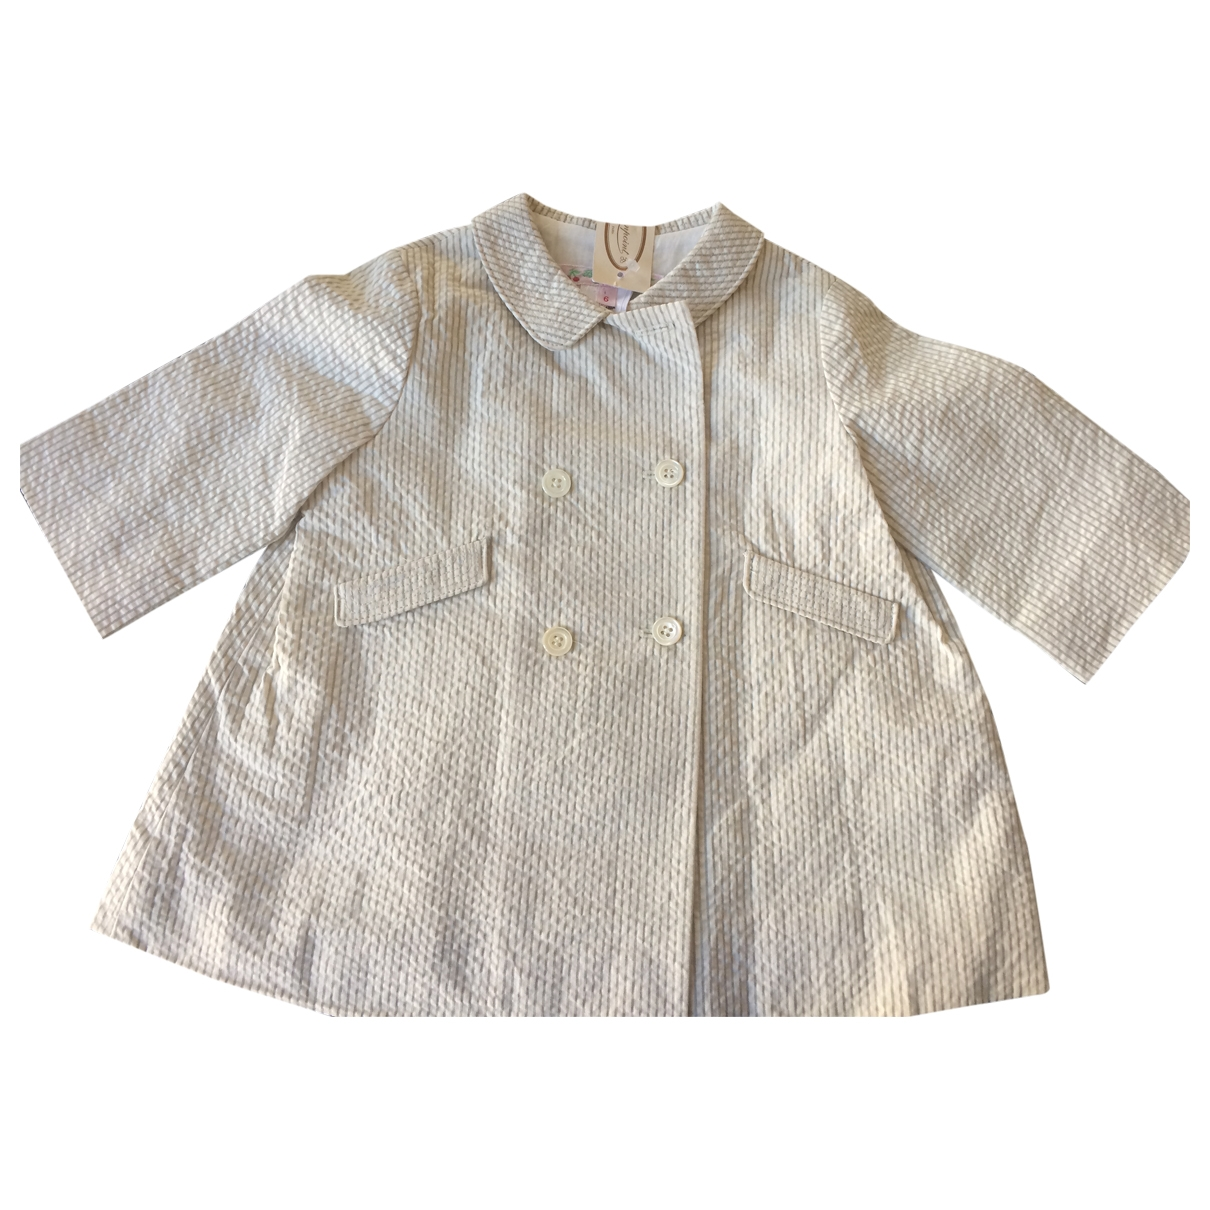 Bonpoint \N White Cotton jacket & coat for Kids 6 months - up to 67cm FR